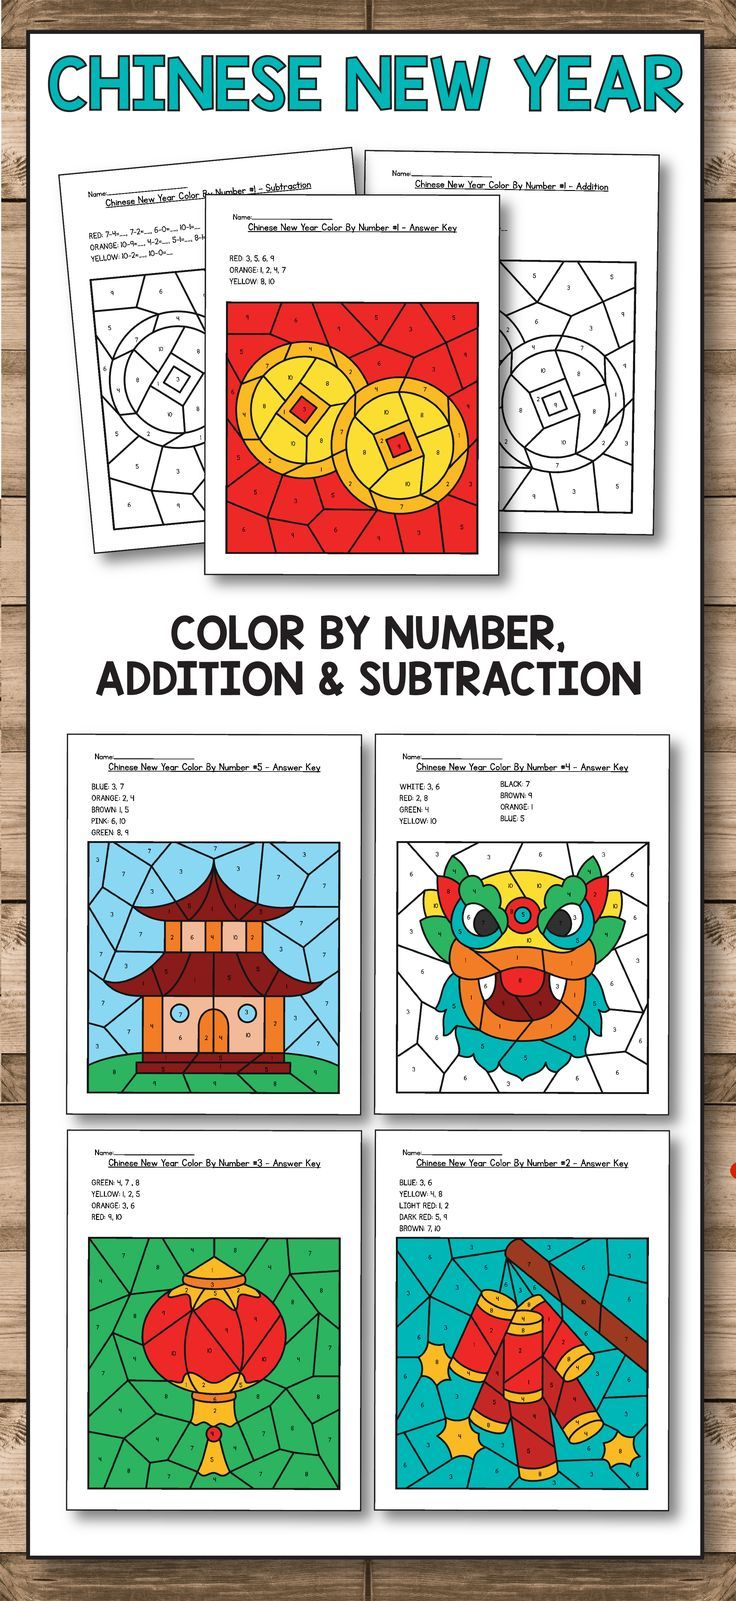 Chinese New Year 2018 Chinese New Year Worksheets Are The Perfect Activities For Preschool Chinese New Year Activities New Years Activities Chinese New Year [ 1601 x 736 Pixel ]